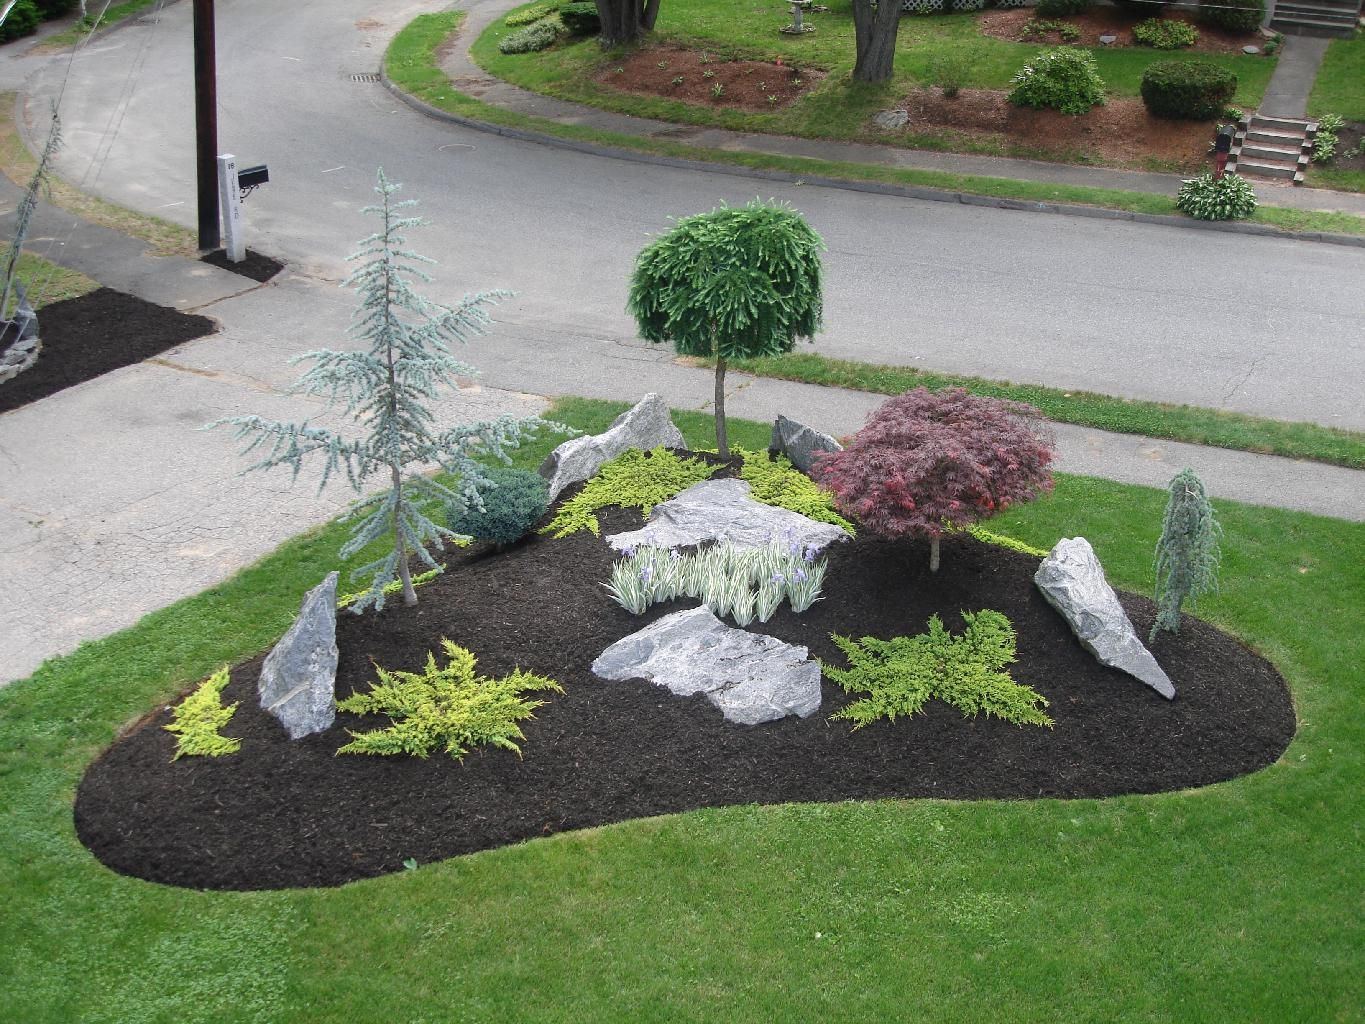 Simple landscape designs with rock beds google search for Simple backyard garden designs